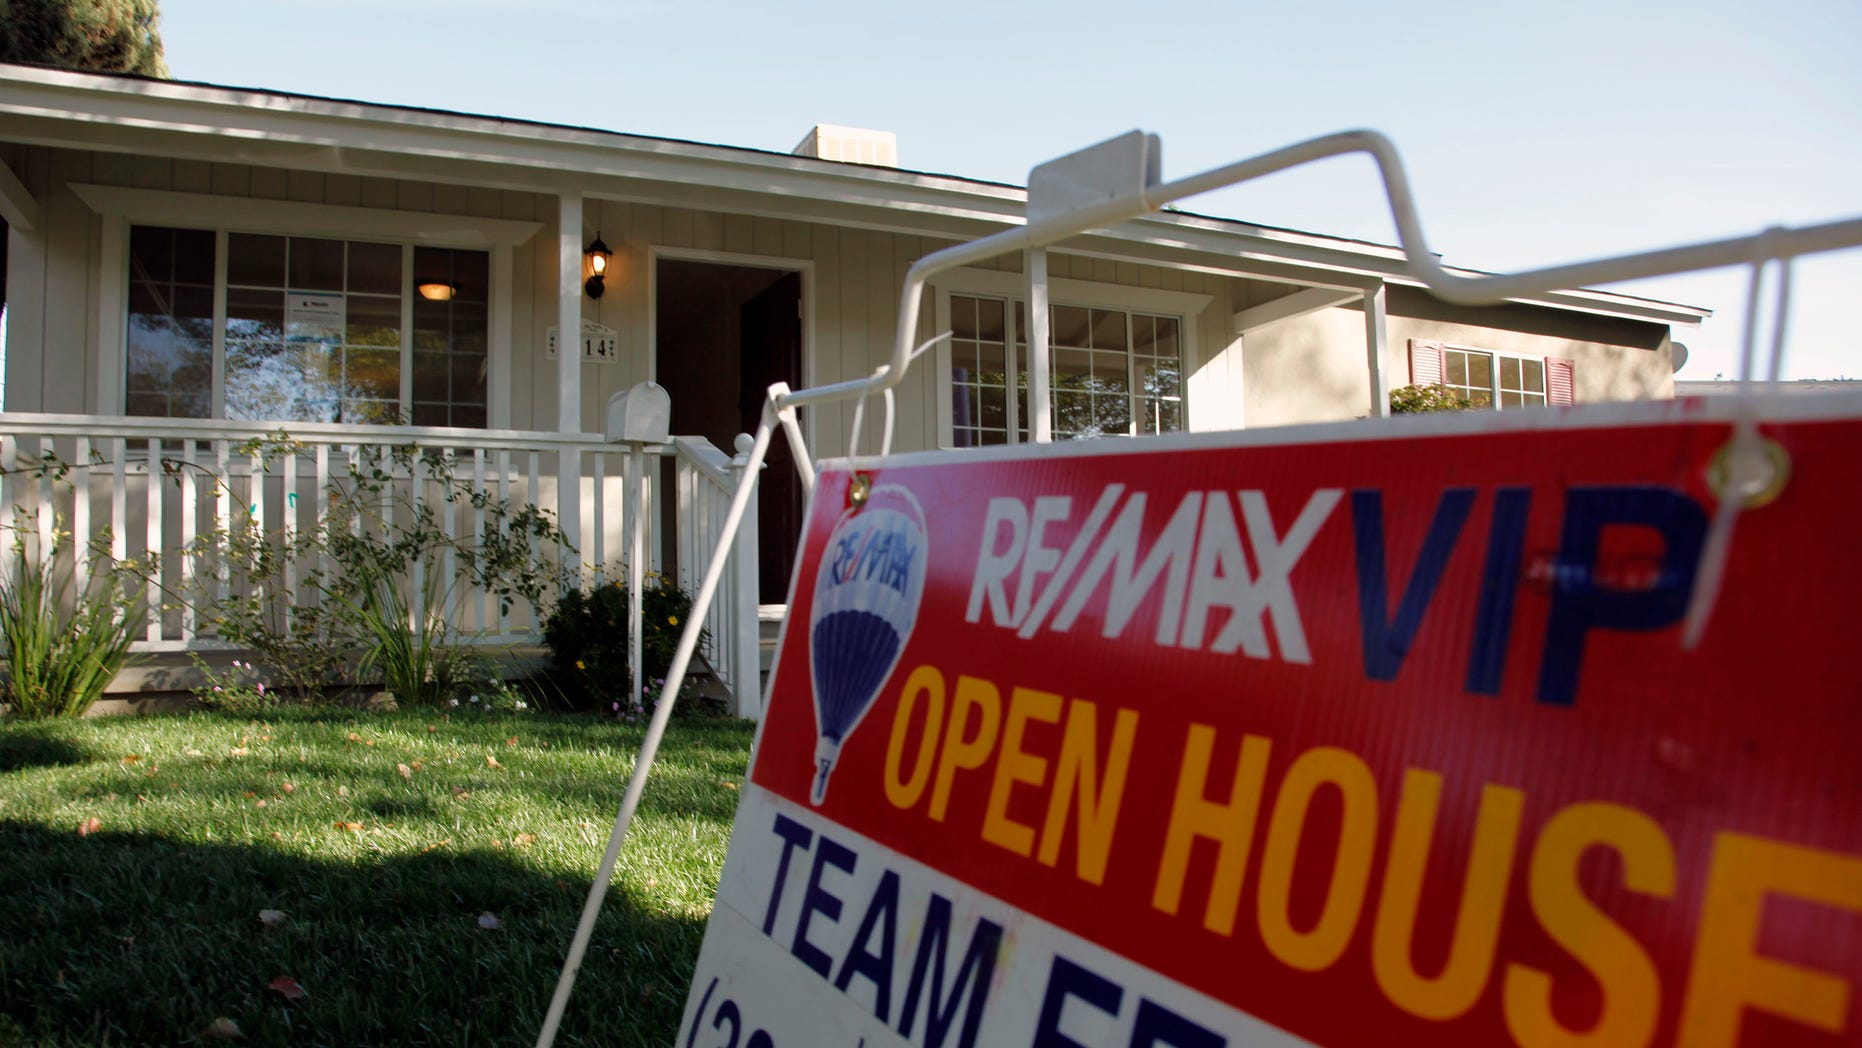 In this Nov. 4, photo, an open house sign is seen on the front lawn of a home for sale in Los Angeles. Home prices are dropping in the nation's largest cities and are expected to fall through next year, with the worst declines coming in areas with high numbers of foreclosures.